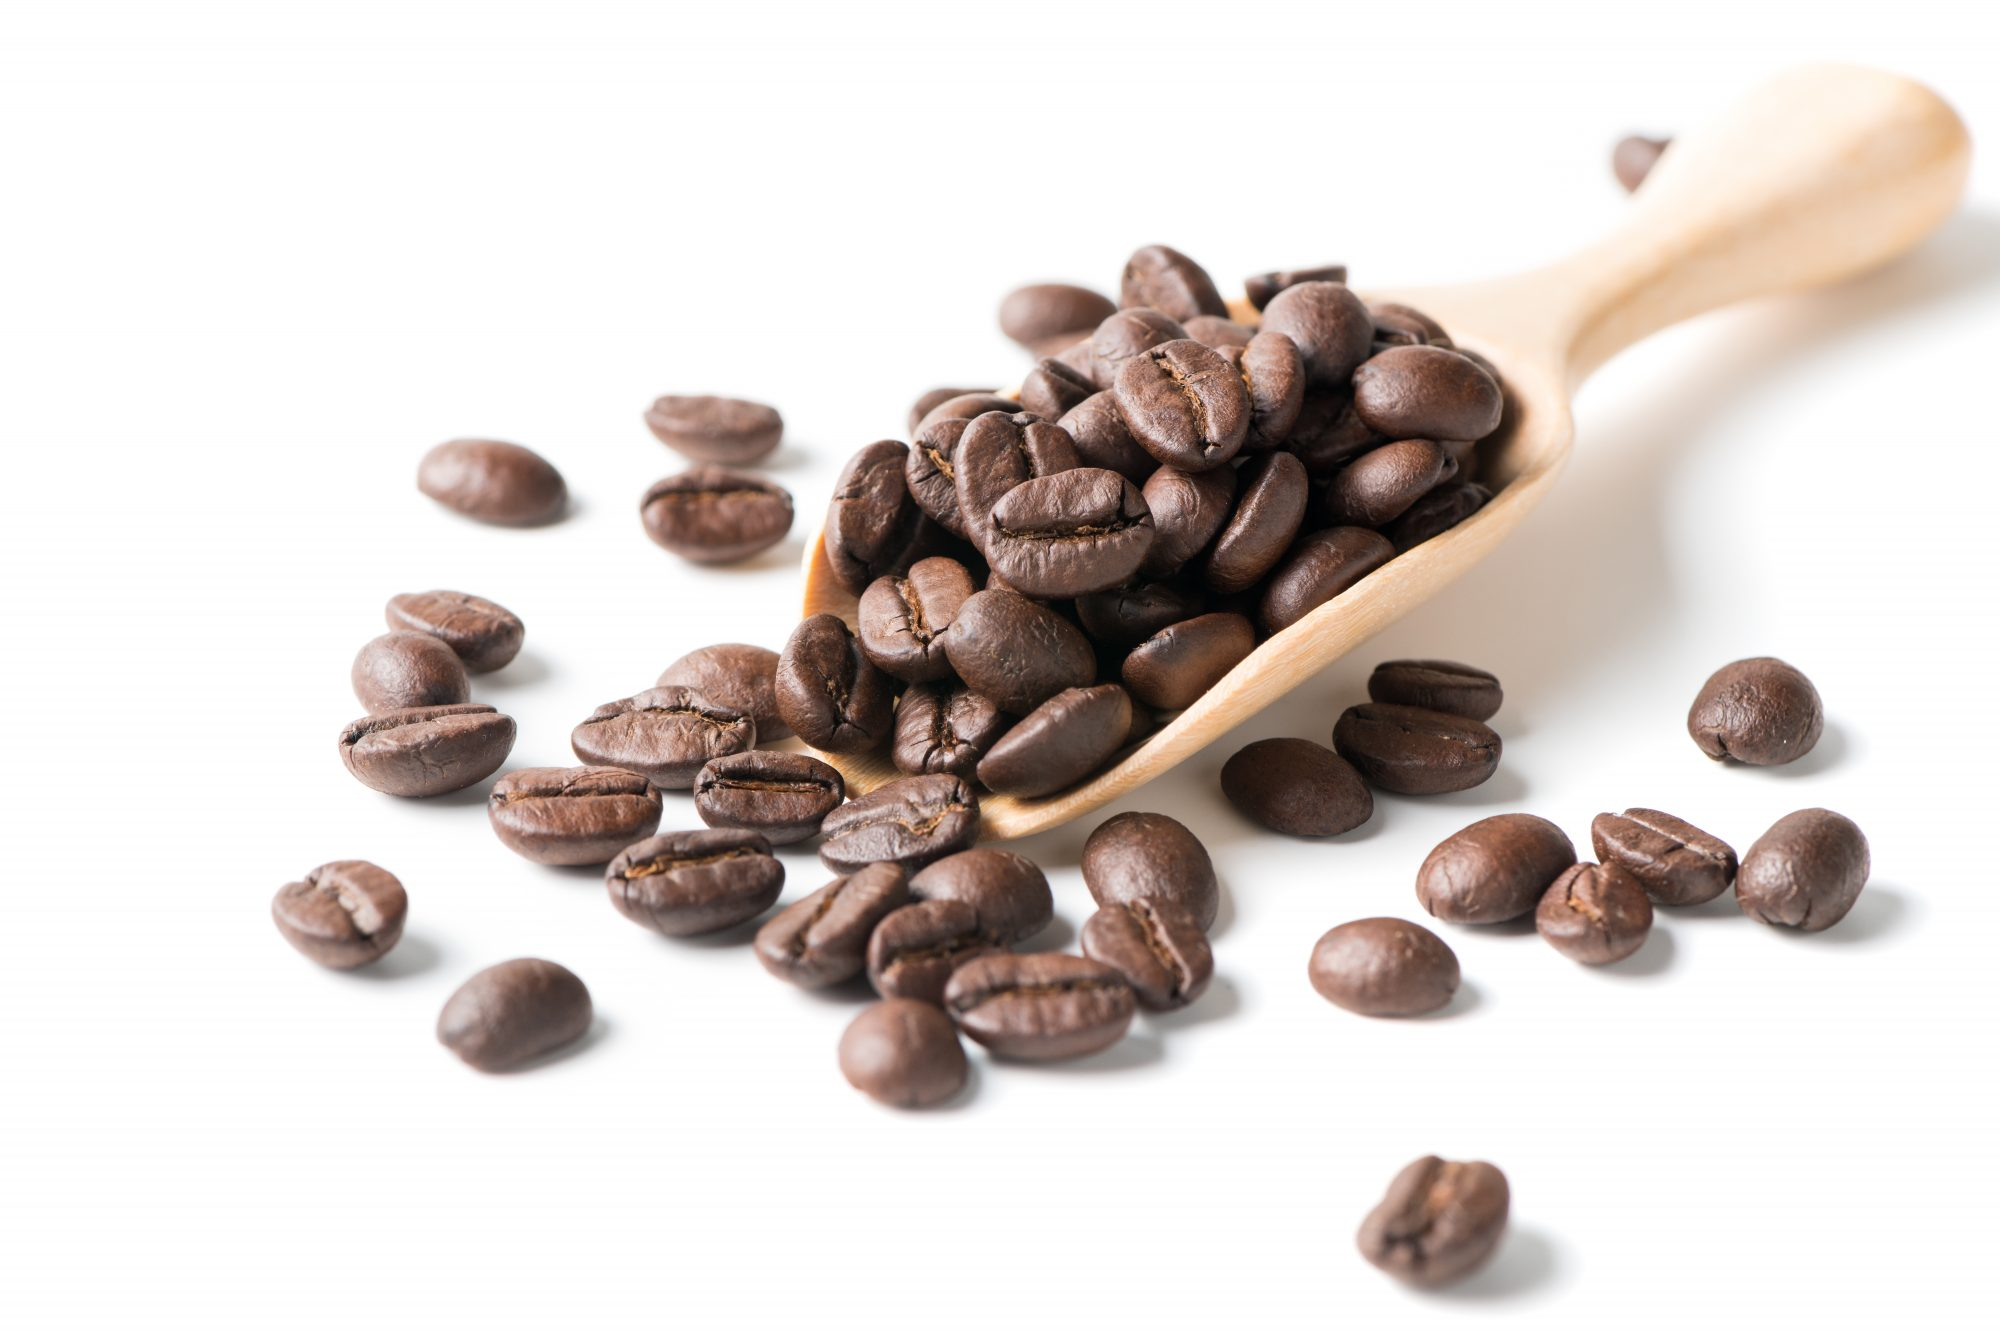 Roasted Coffee Beans In Wooden Spoon Against White Background